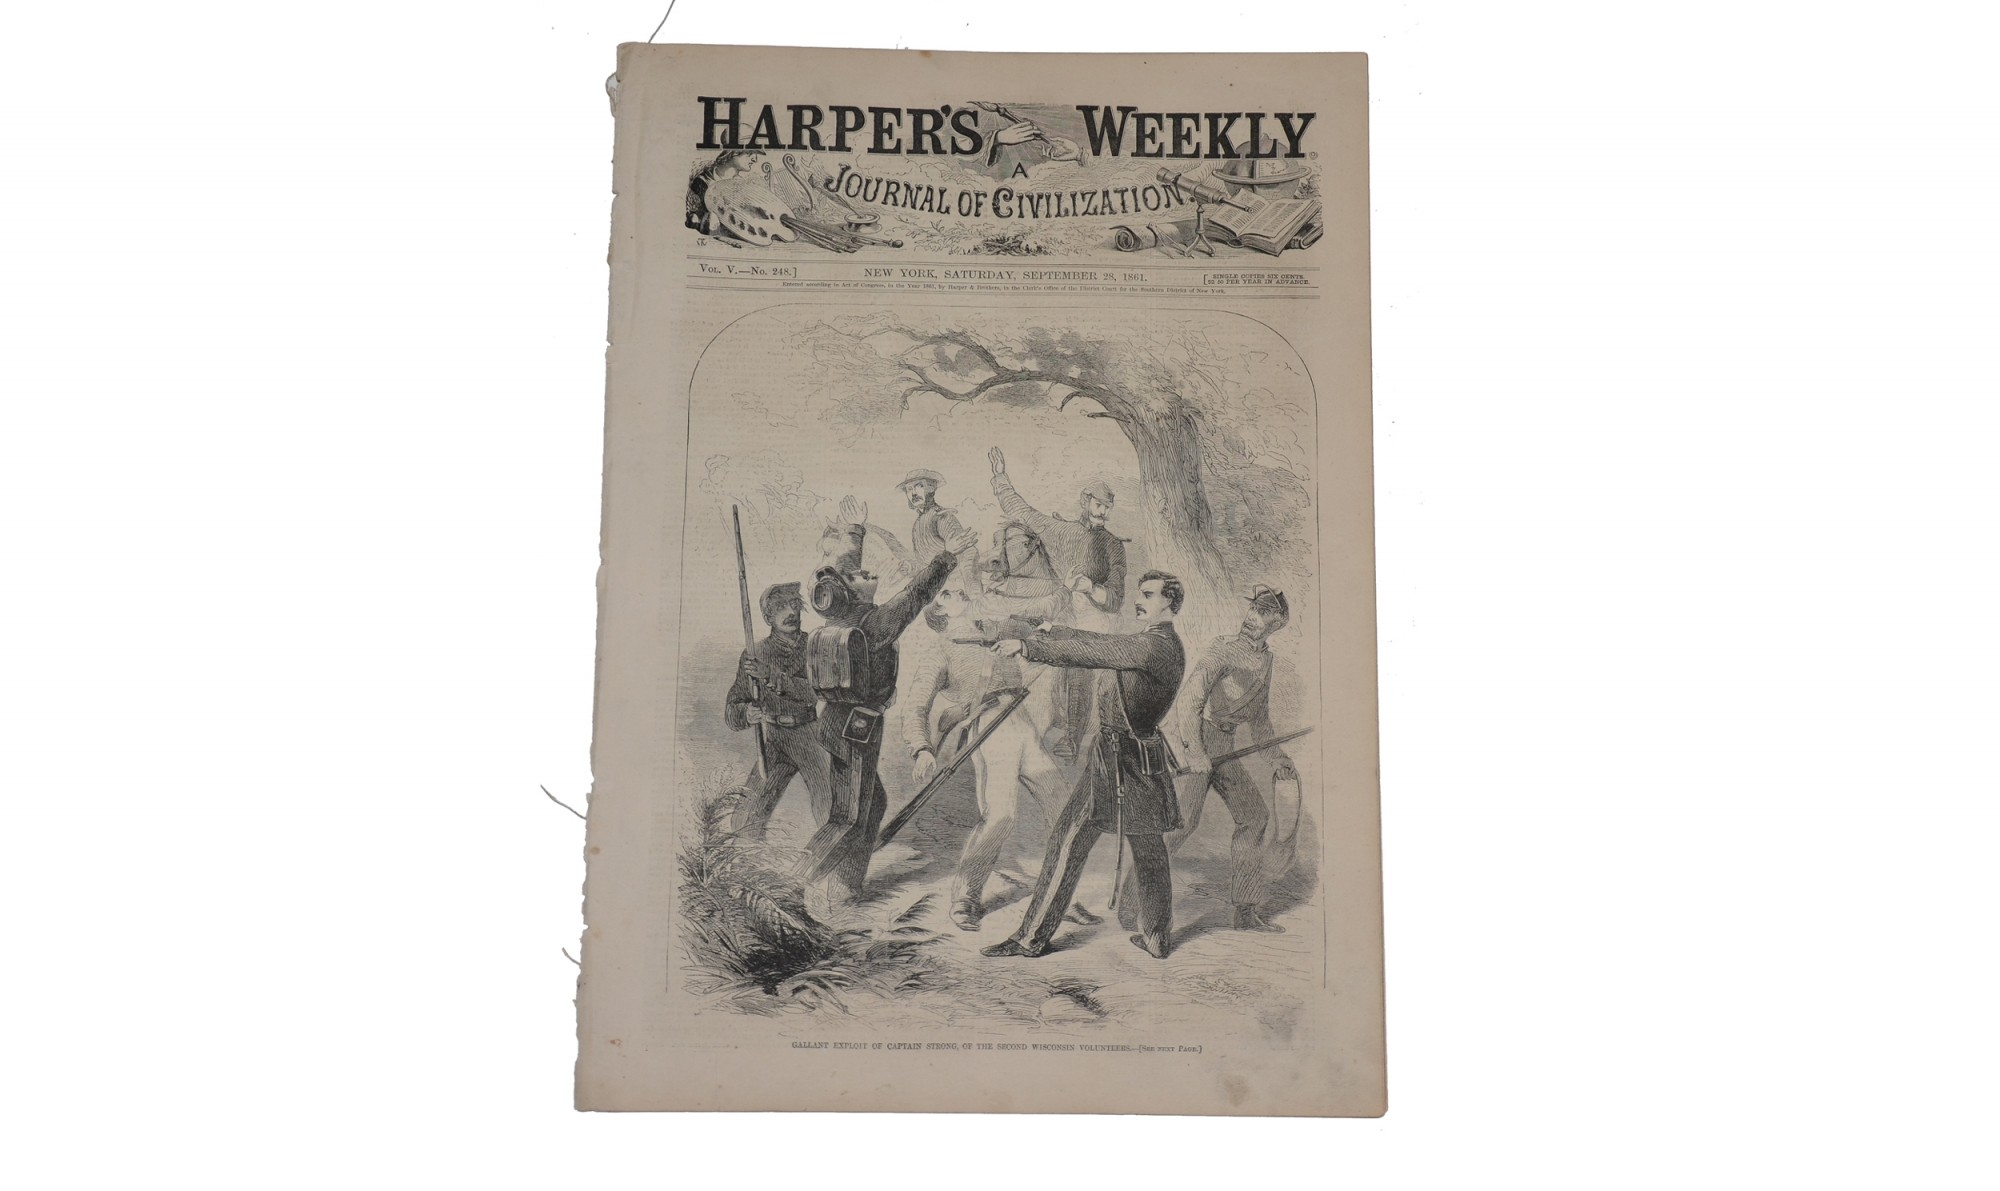 HARPER'S WEEKLY DATED SEPTEMBER 28, 1861